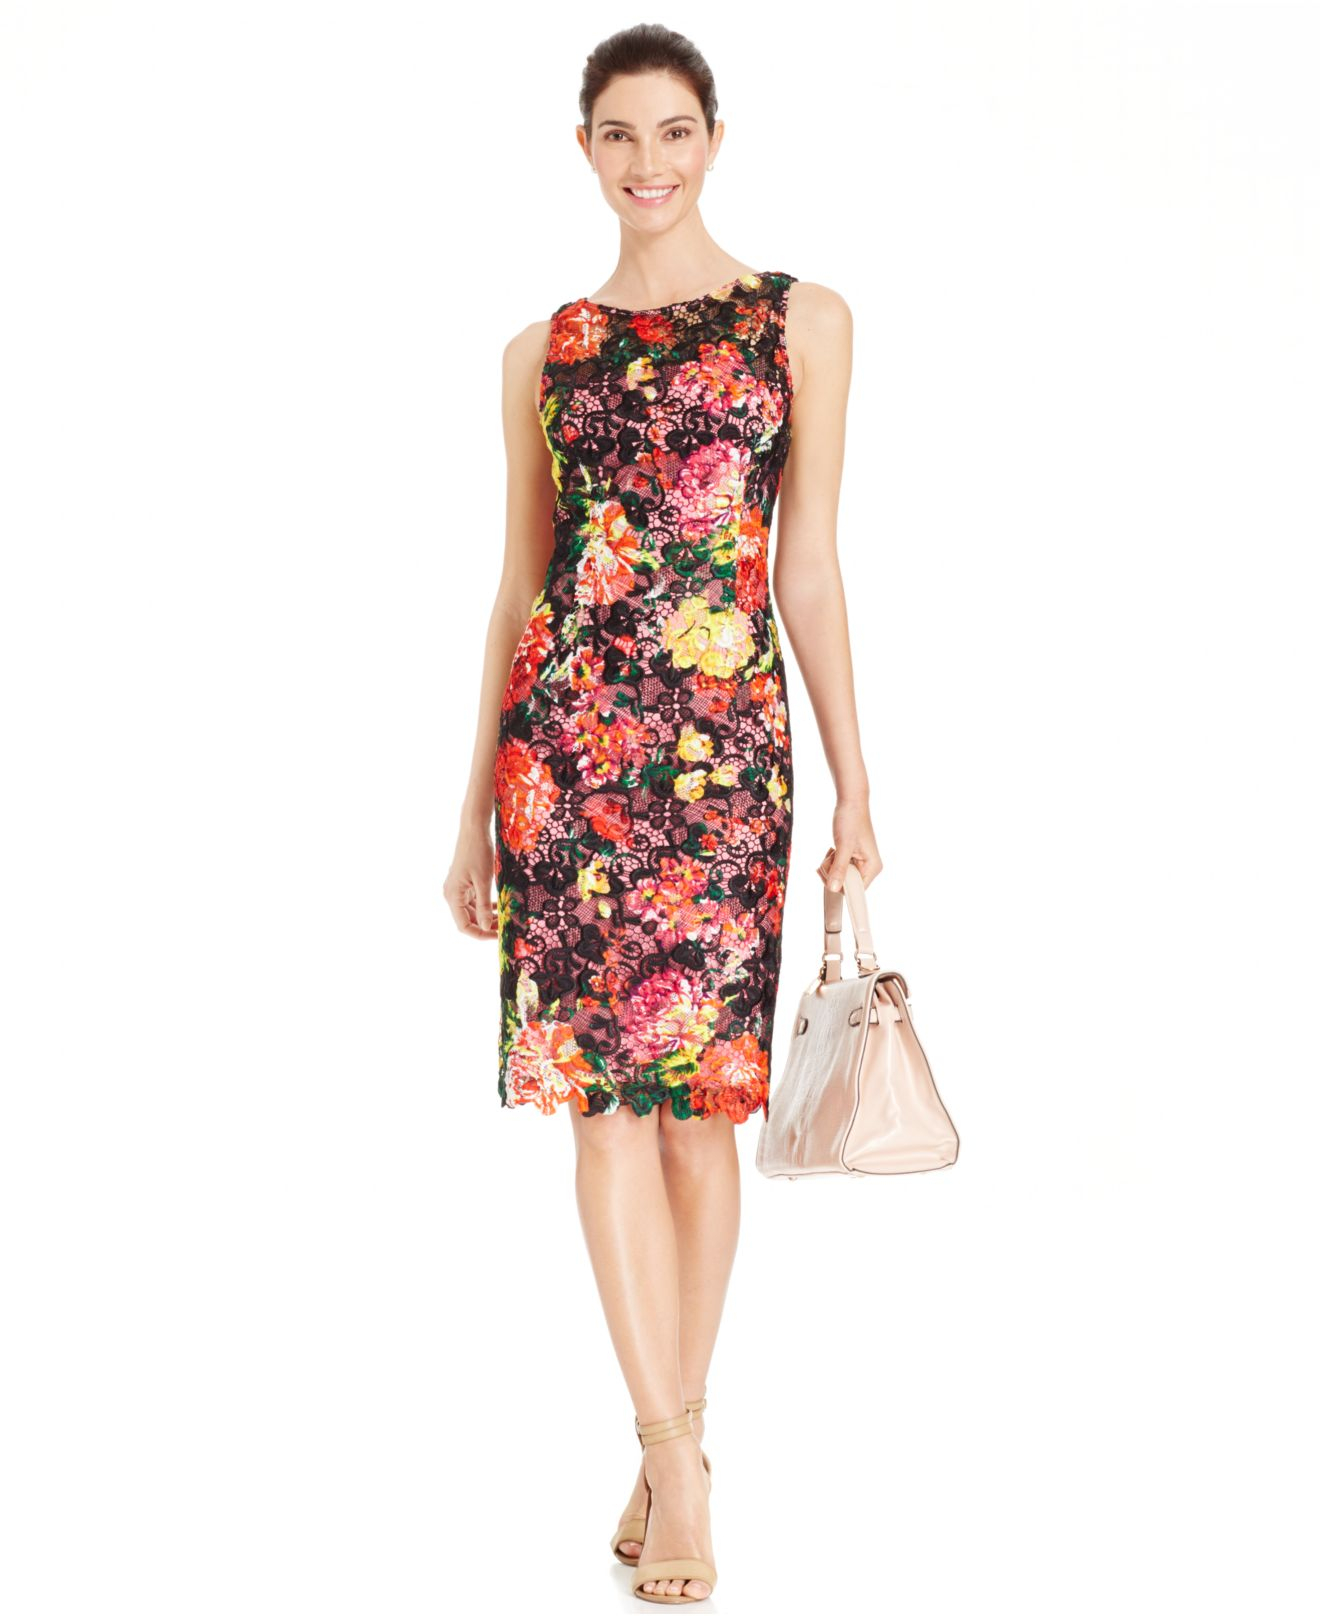 Lyst - Adrianna Papell Floral-print Lace Sheath Dress in Black